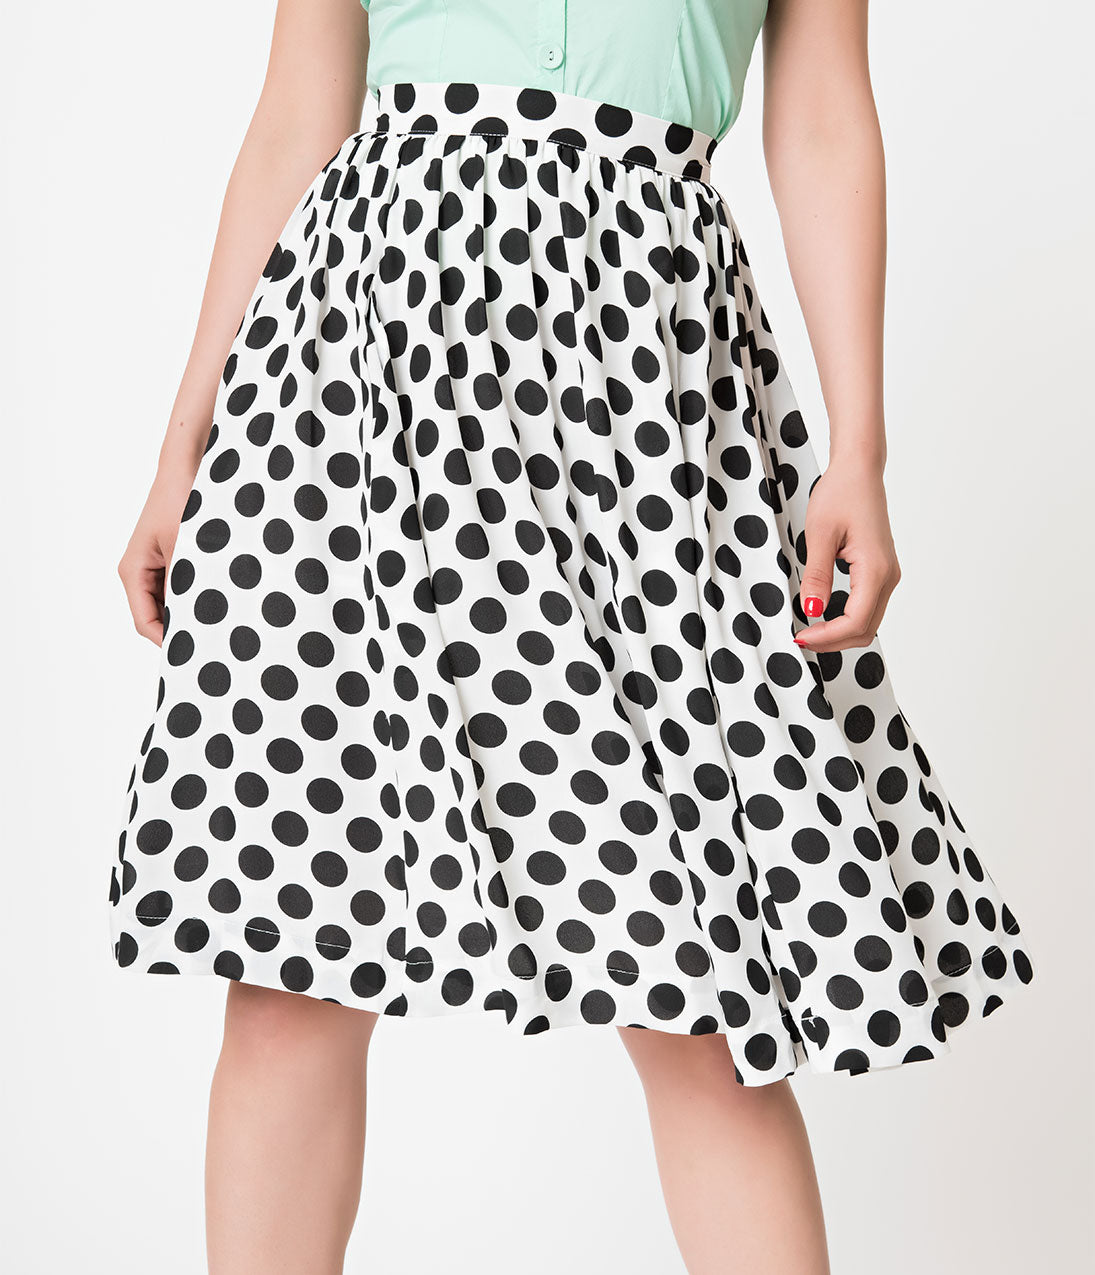 1920s Skirt History Retro Style White  Black Polka Dot Chiffon Flare Skirt $46.00 AT vintagedancer.com